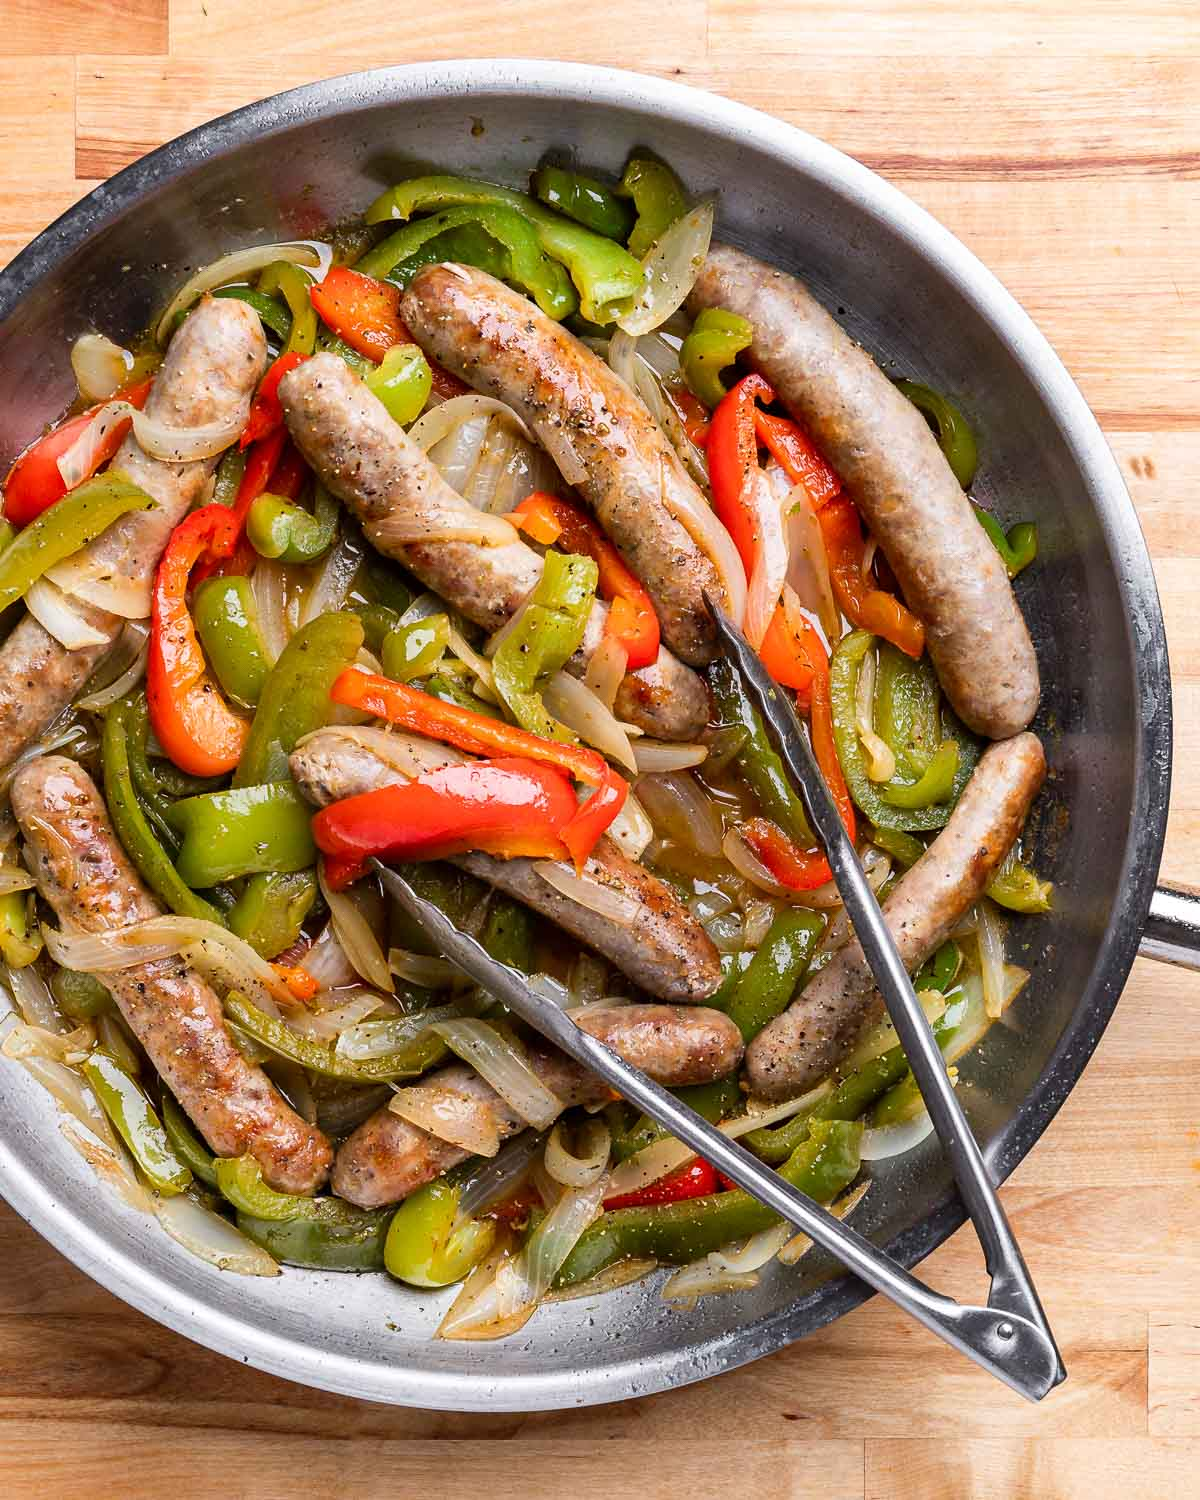 Large pan of sausage and peppers on wood table.